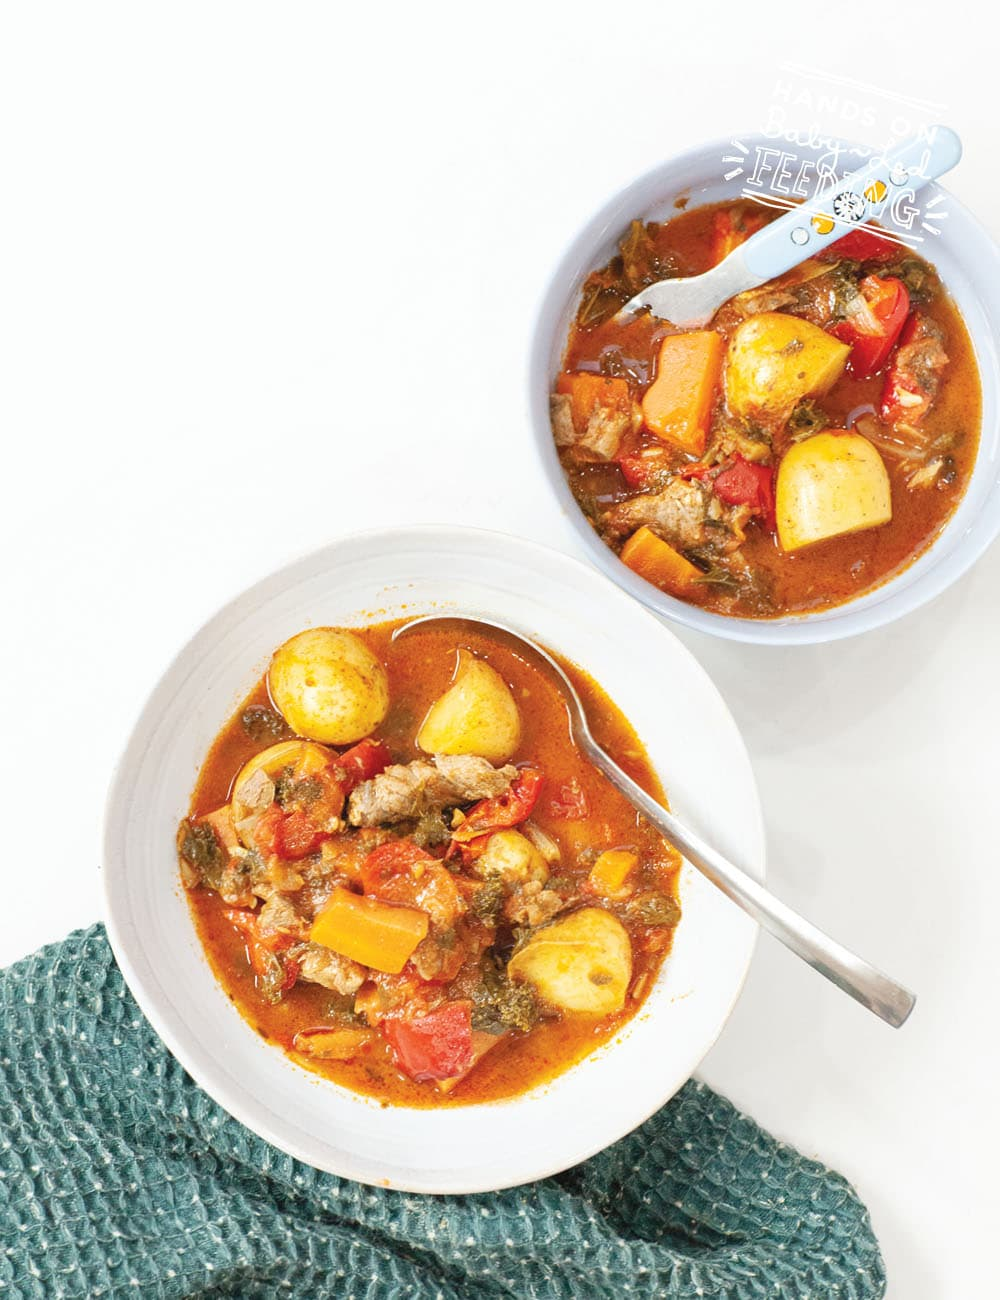 A healthy traditional Irish Stew that is safe for baby led weaning. Easy to prepare then slow simmered for a full rich flavour. This beef and veggie stew is full of healthy vegetables that even picky eaters will love! #saintpatricksrecipe #irishrecipe #beefstew #babyledweaning